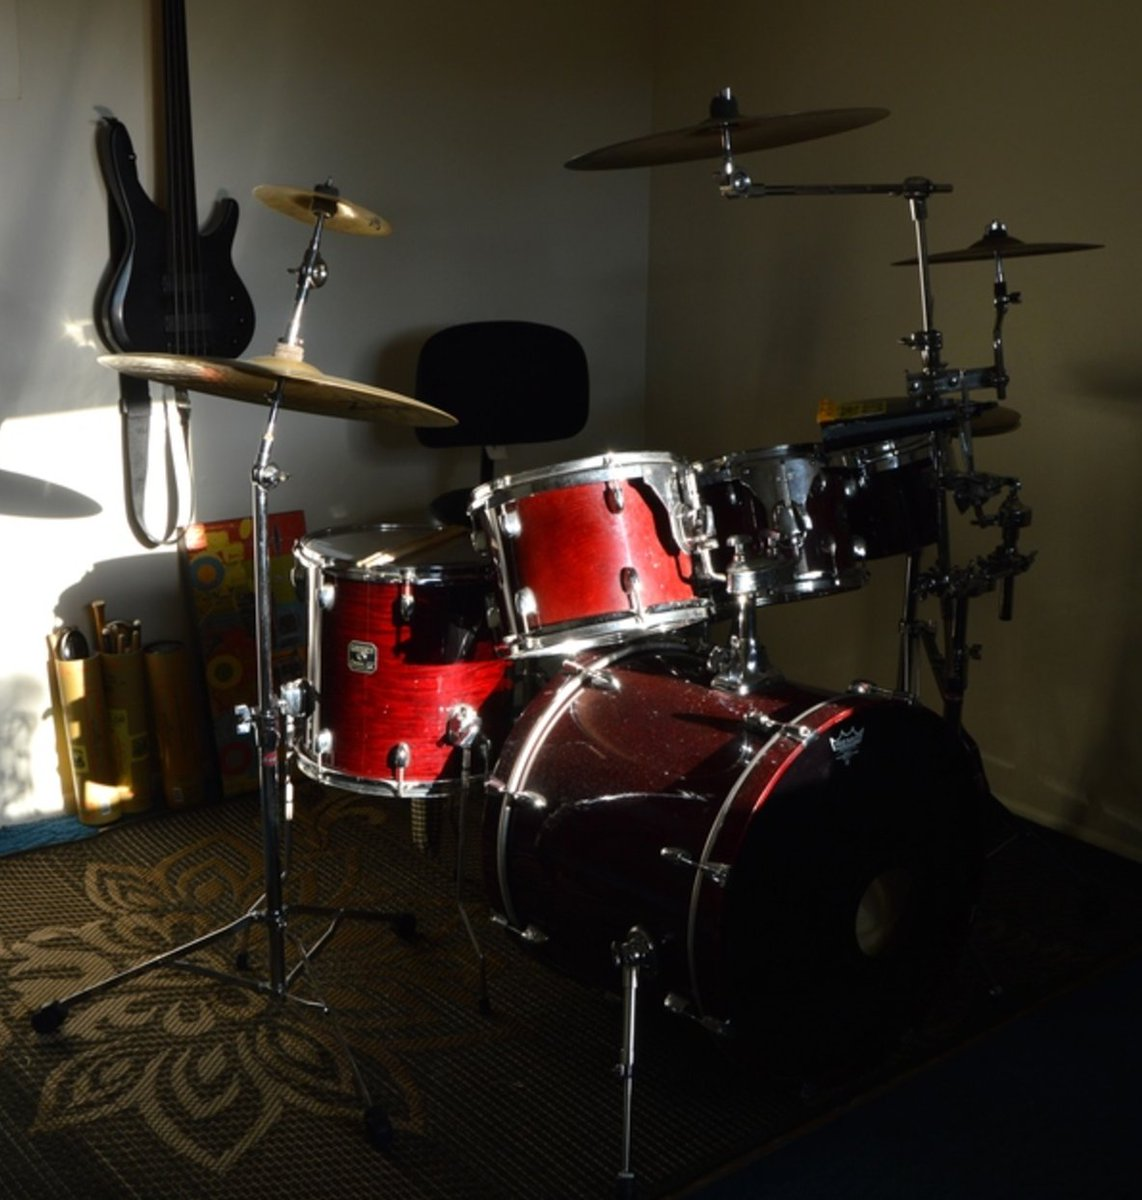 Drummers, here's a song you could play on — https://t.co/UjkIDbXQn5 https://t.co/NlNaTtyi1m